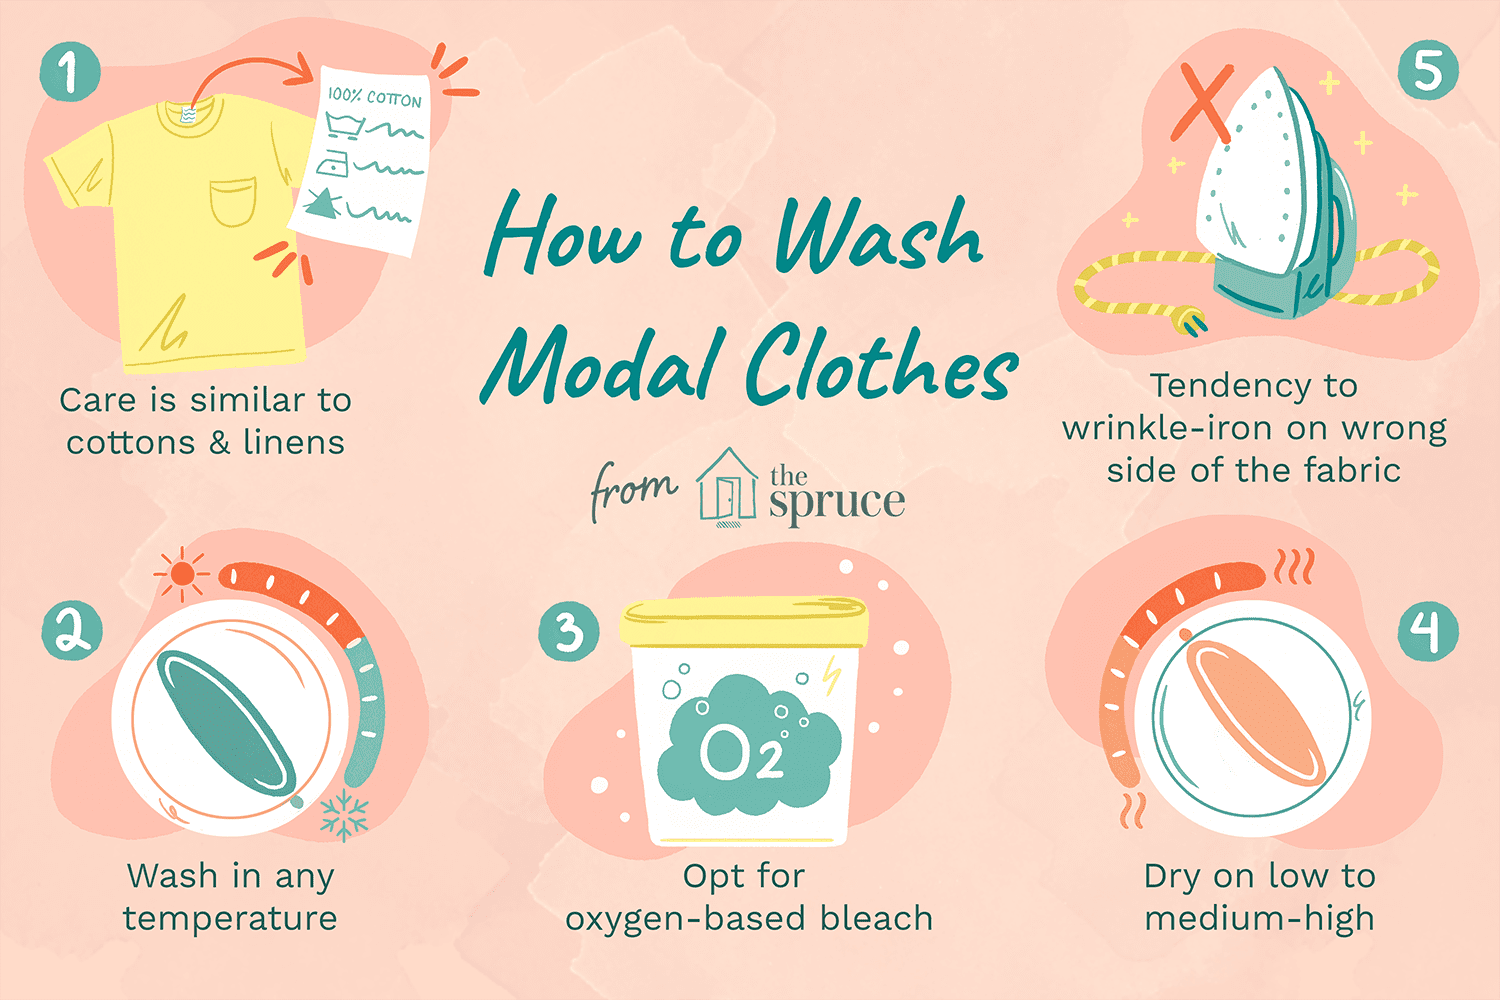 How To Wash Modal Clothes